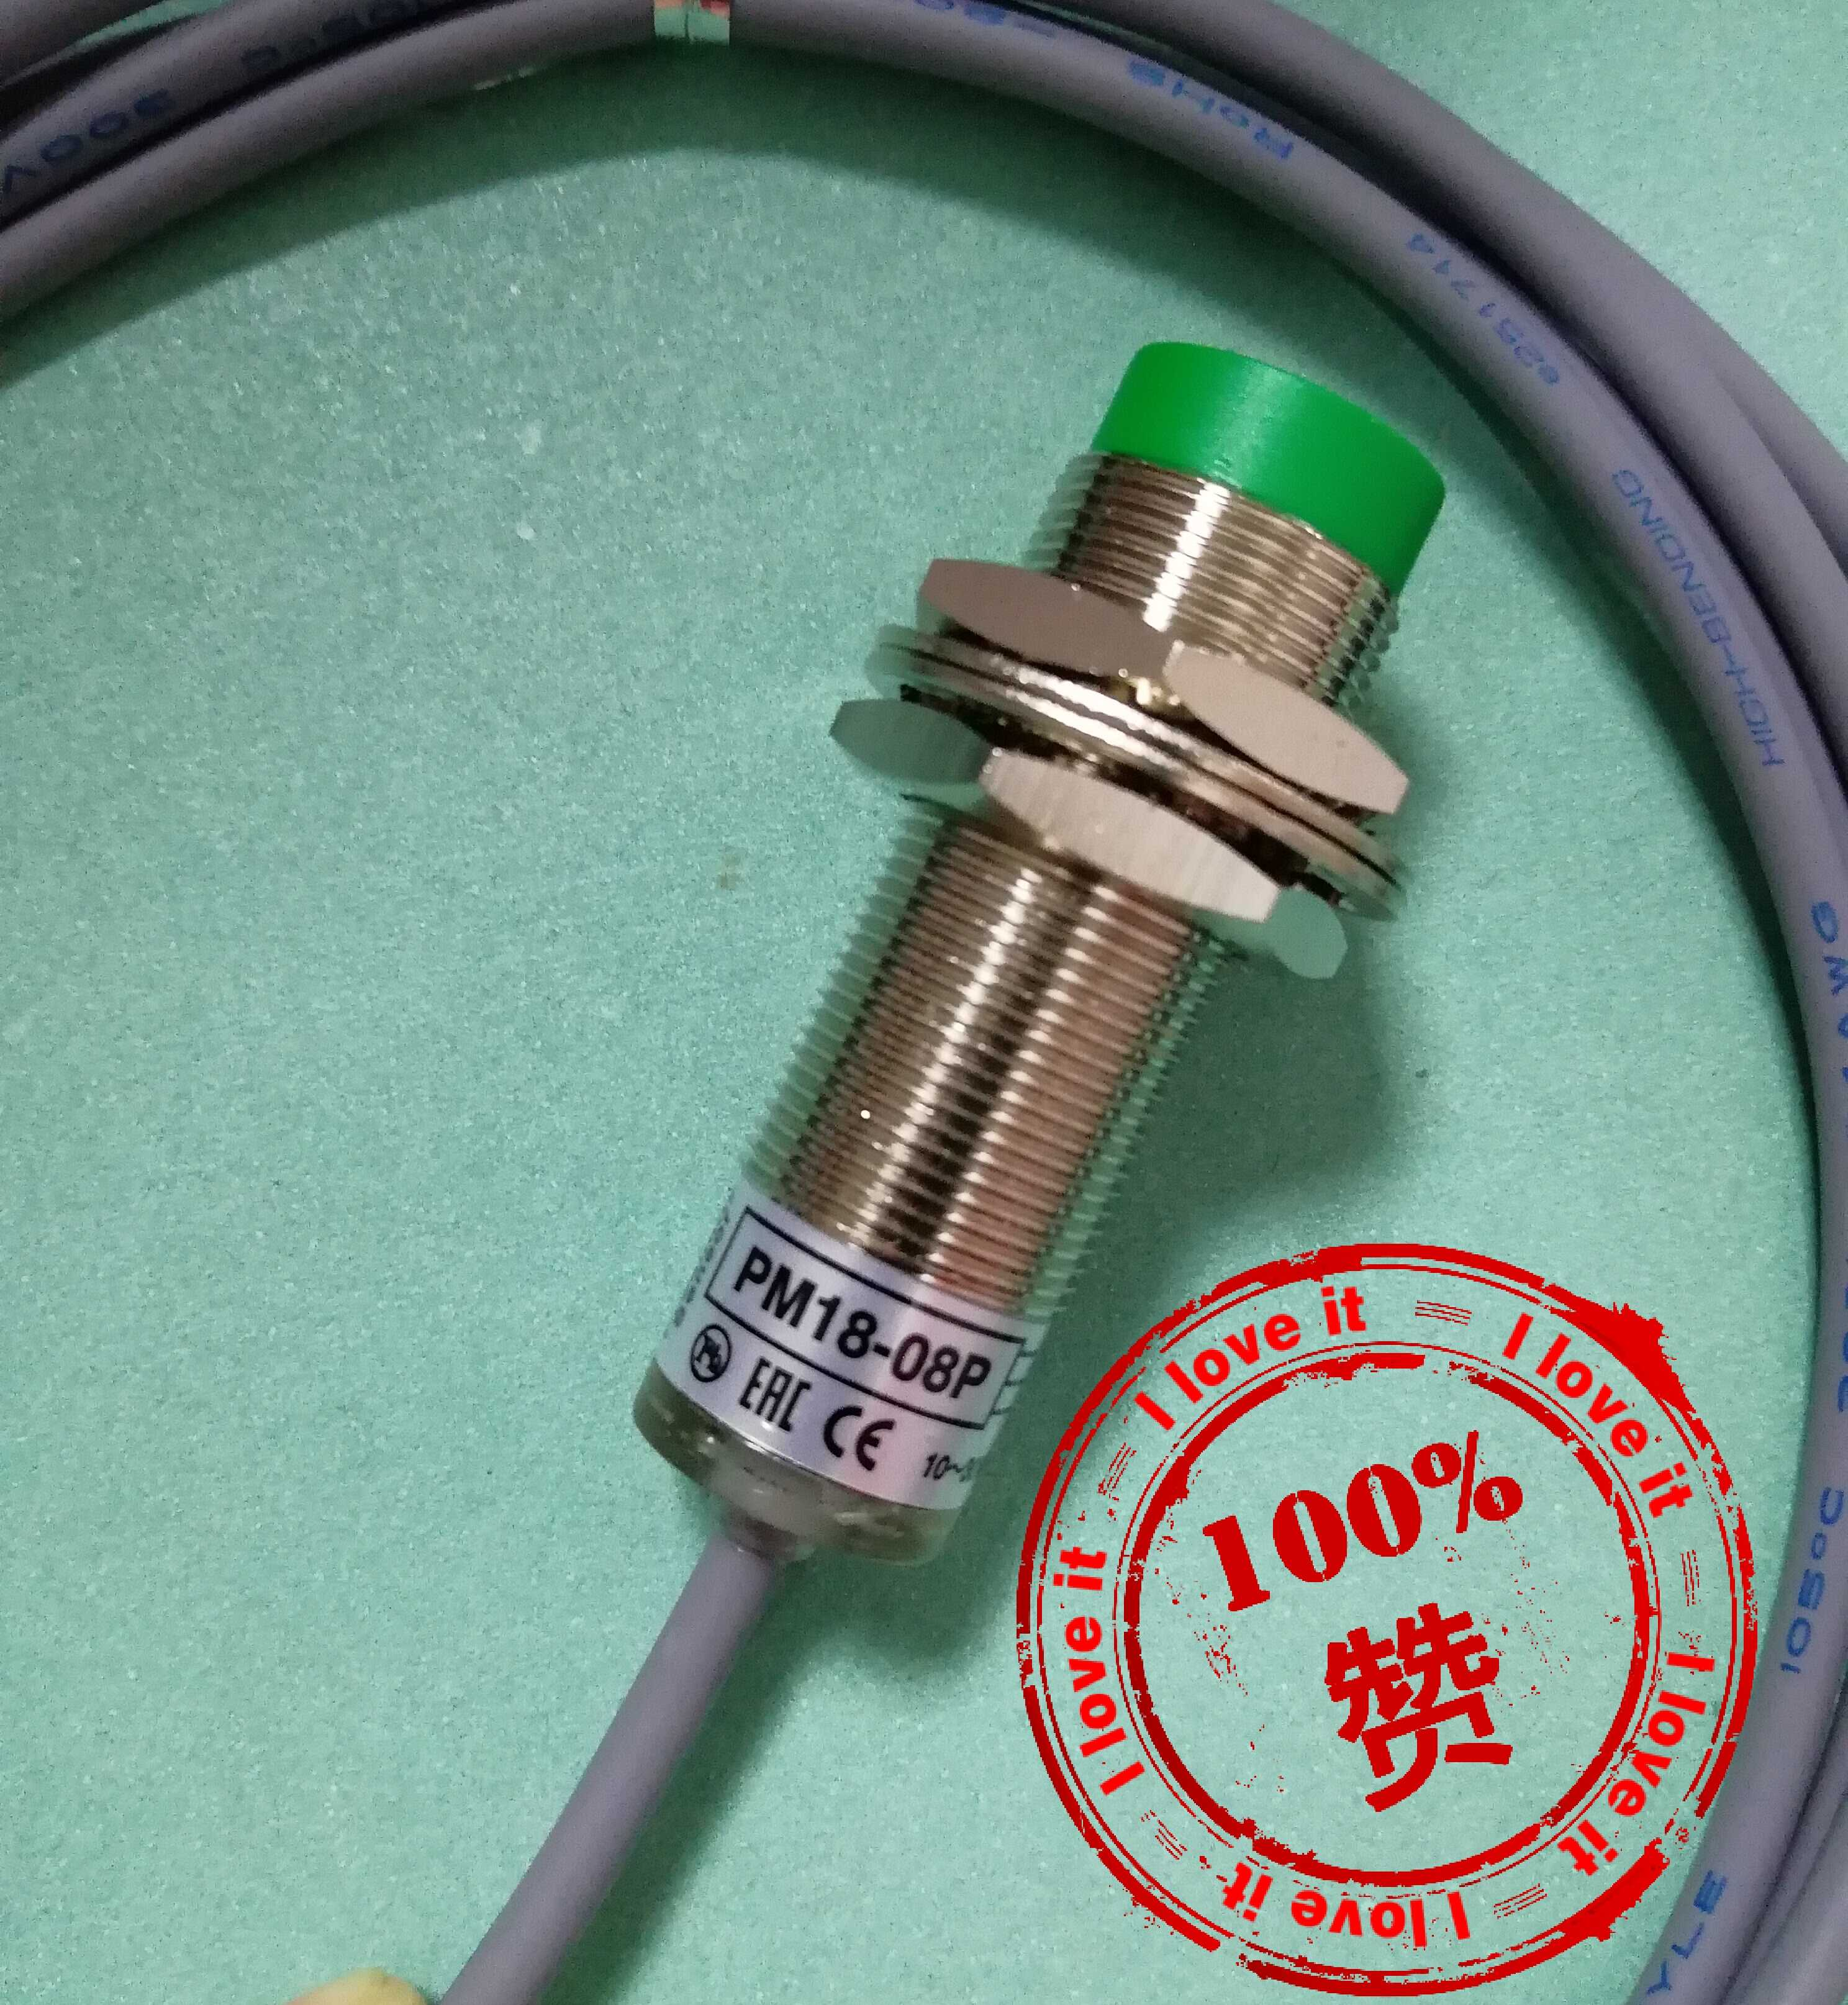 New Original pm18-08P Proximity Switch PNP Normally Open Inlet Sensor 3 Line PMNew Original pm18-08P Proximity Switch PNP Normally Open Inlet Sensor 3 Line PM